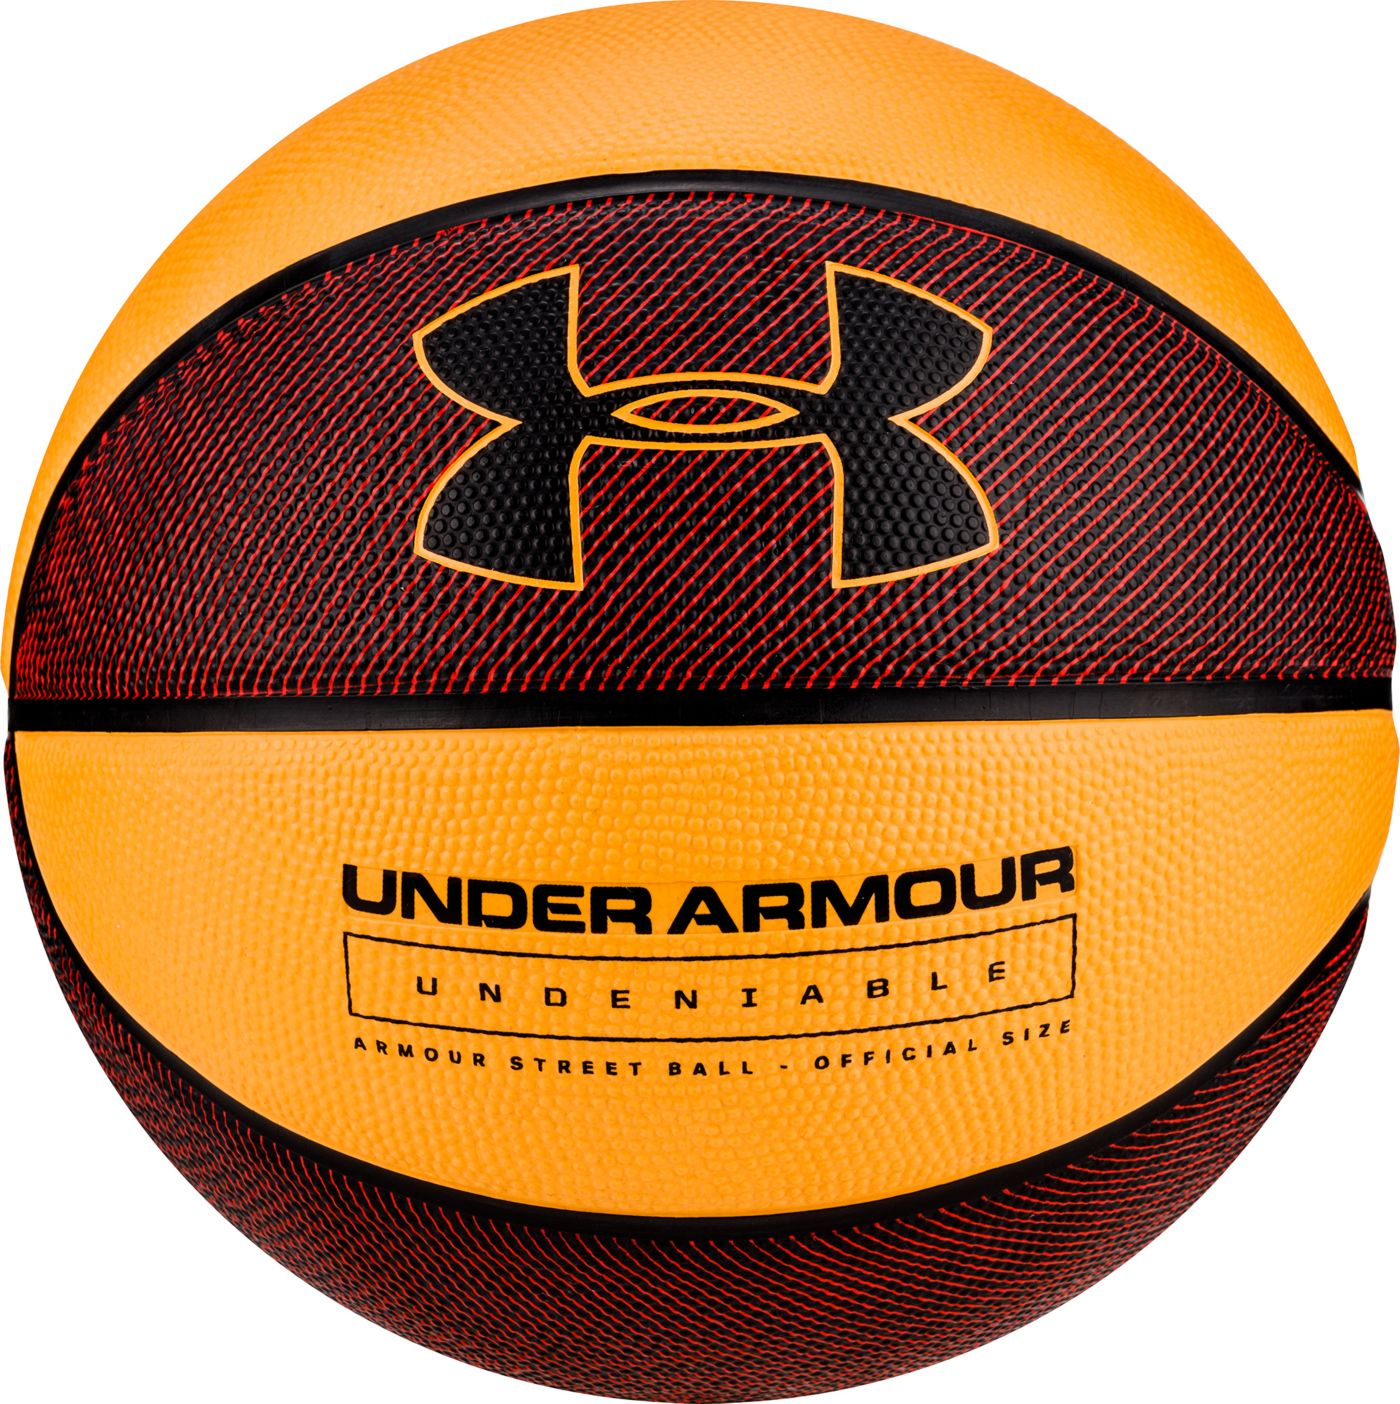 Under Armour Undeniable Official Outdoor Basketball